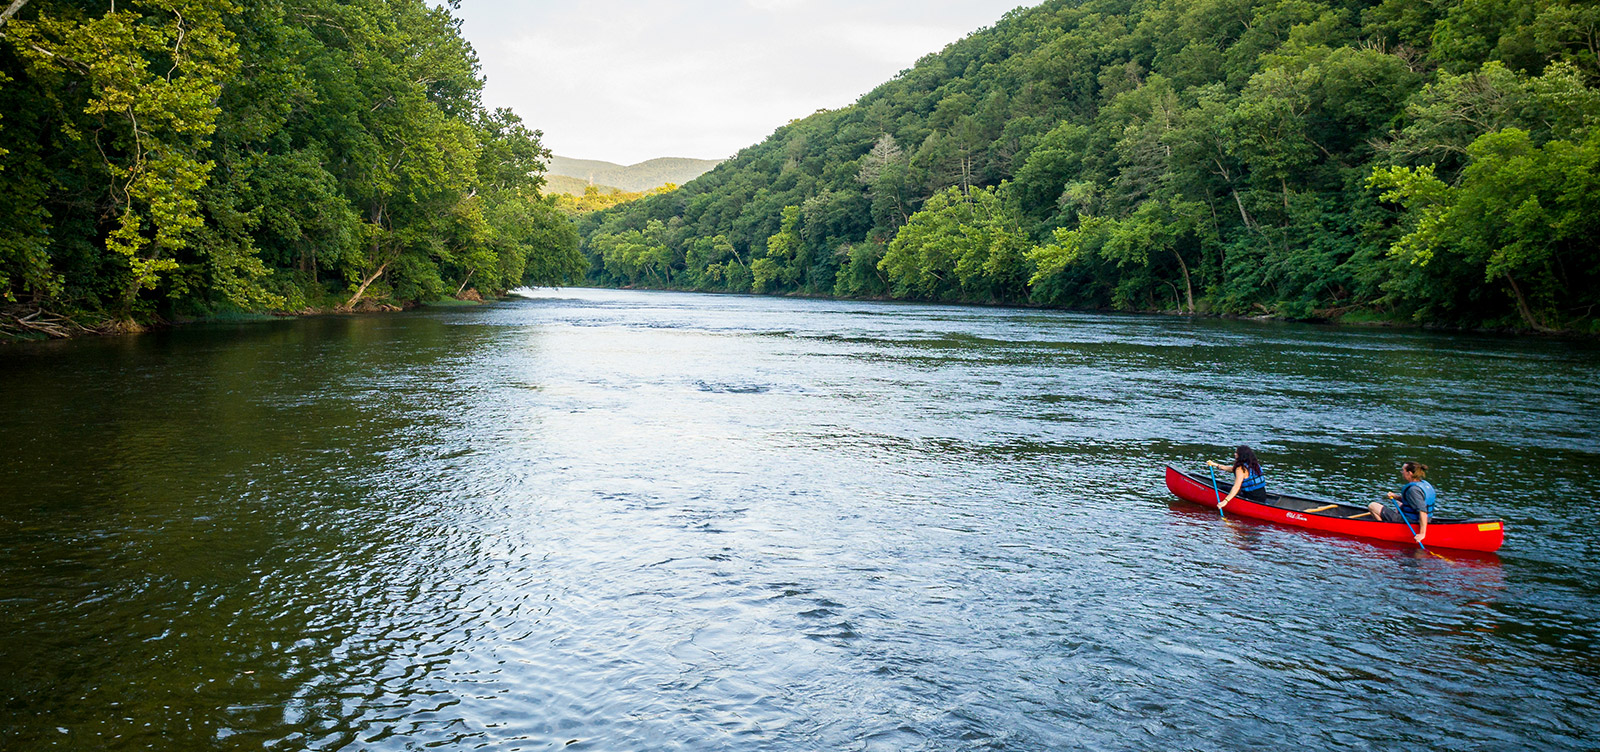 Canoeing in the Shenandoah Valley